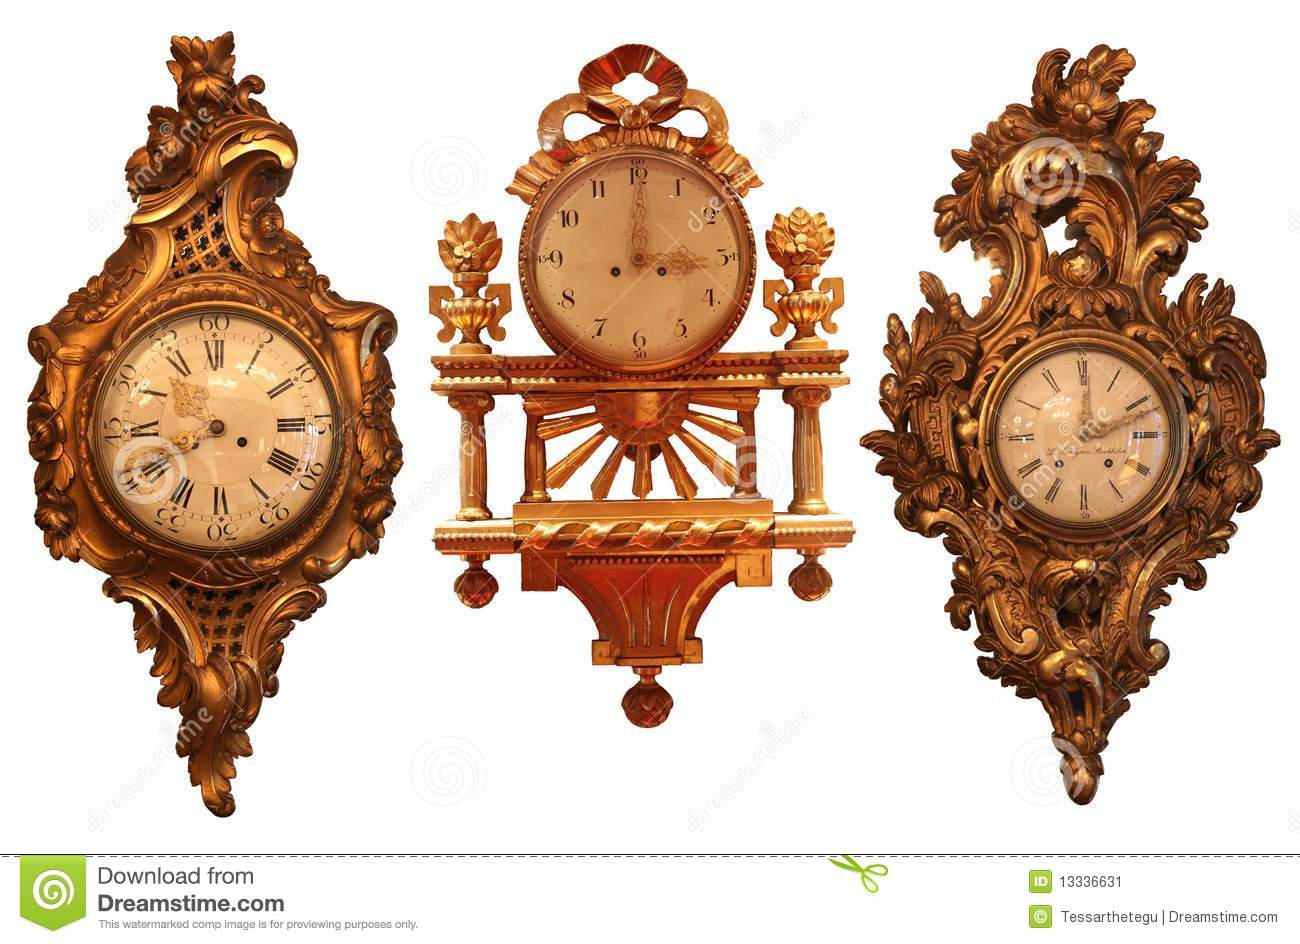 Ancient wall clocks with wooden structure stock image image royalty free stock photo download ancient wall clocks with wooden amipublicfo Choice Image